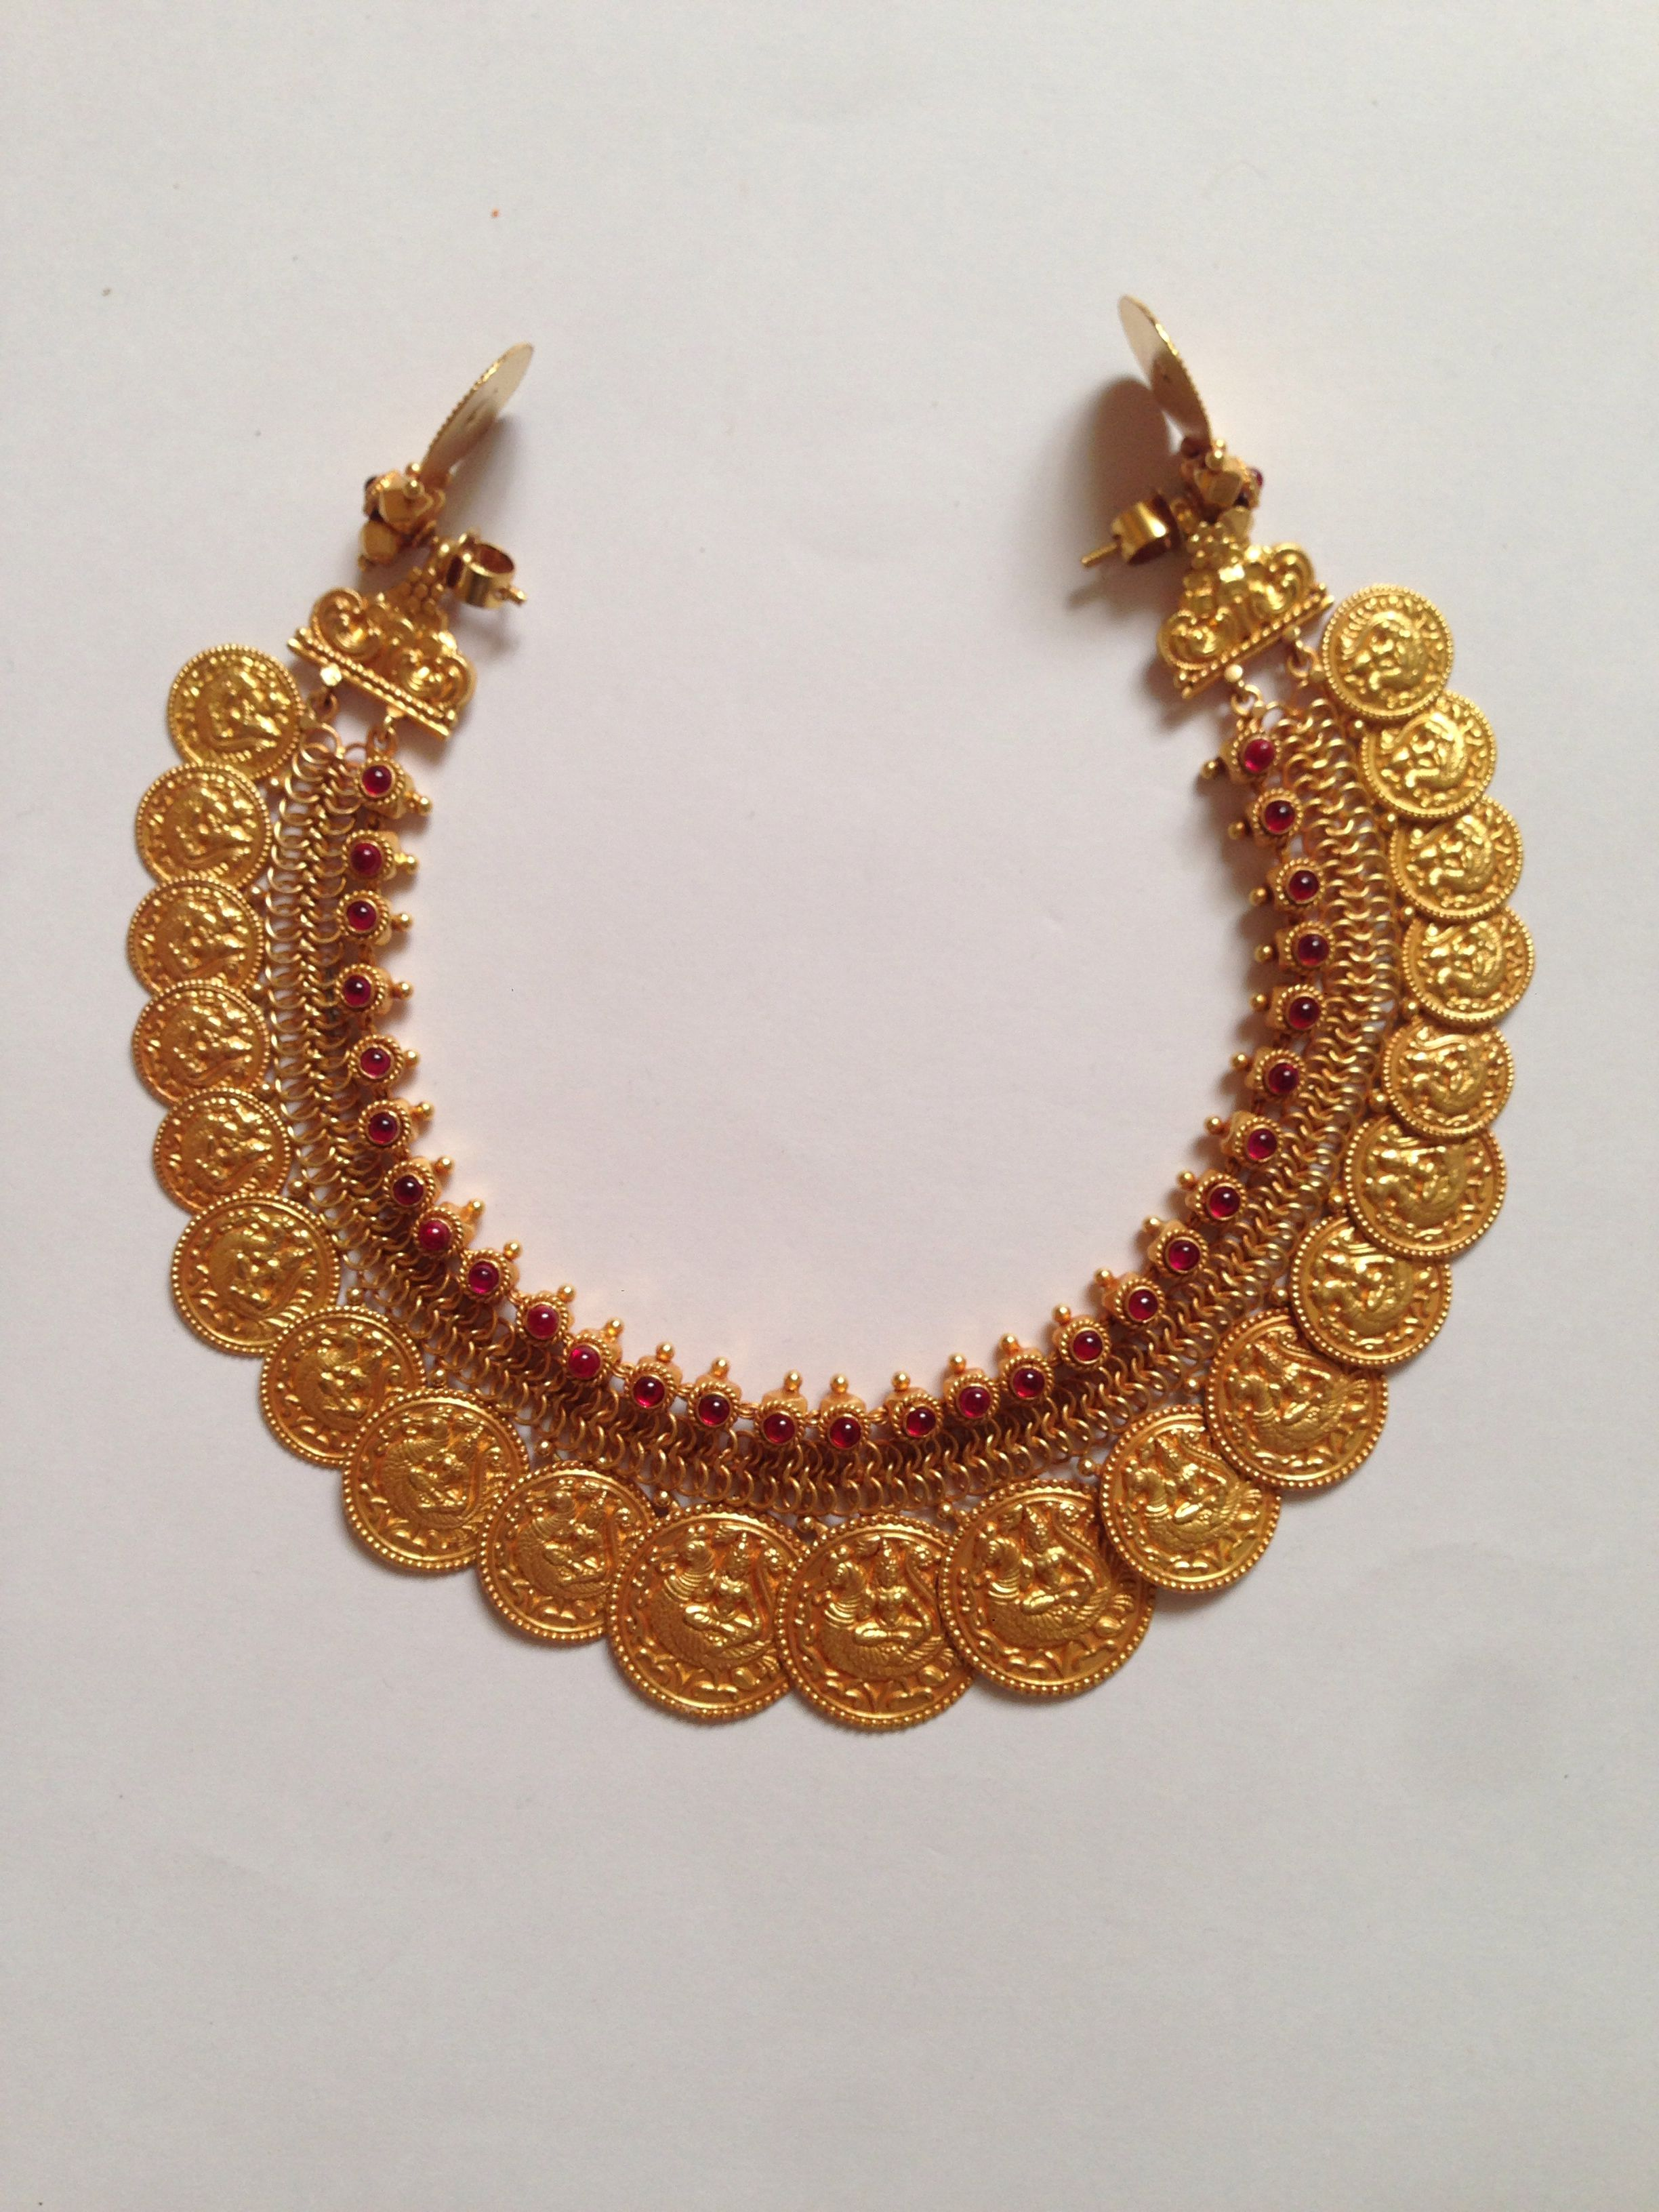 jewellery ruby chain antique necklace dar jewels long gold south india